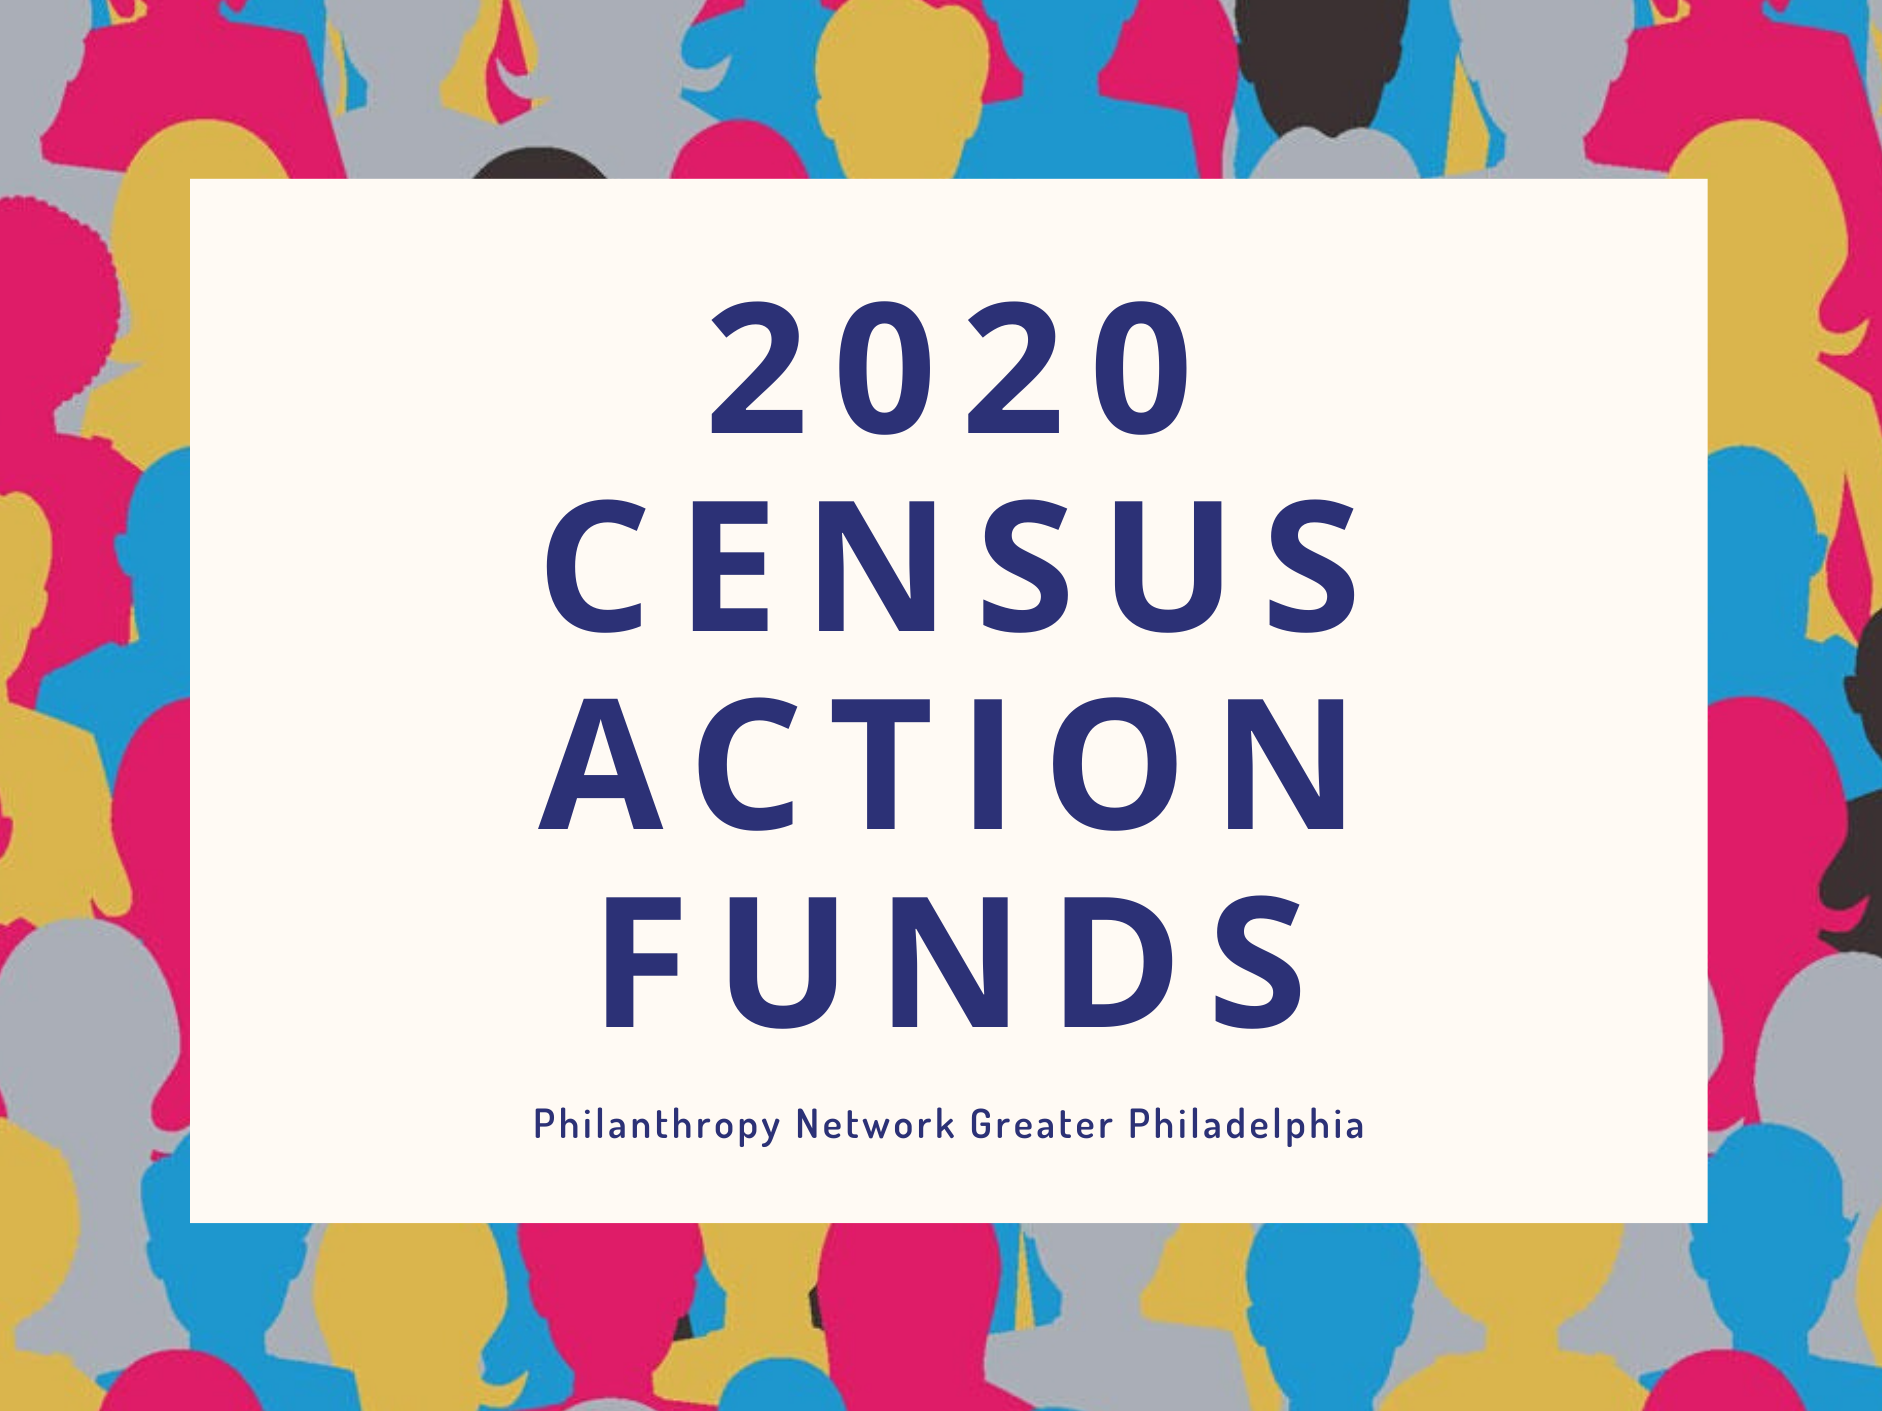 2020 Census Action Funds